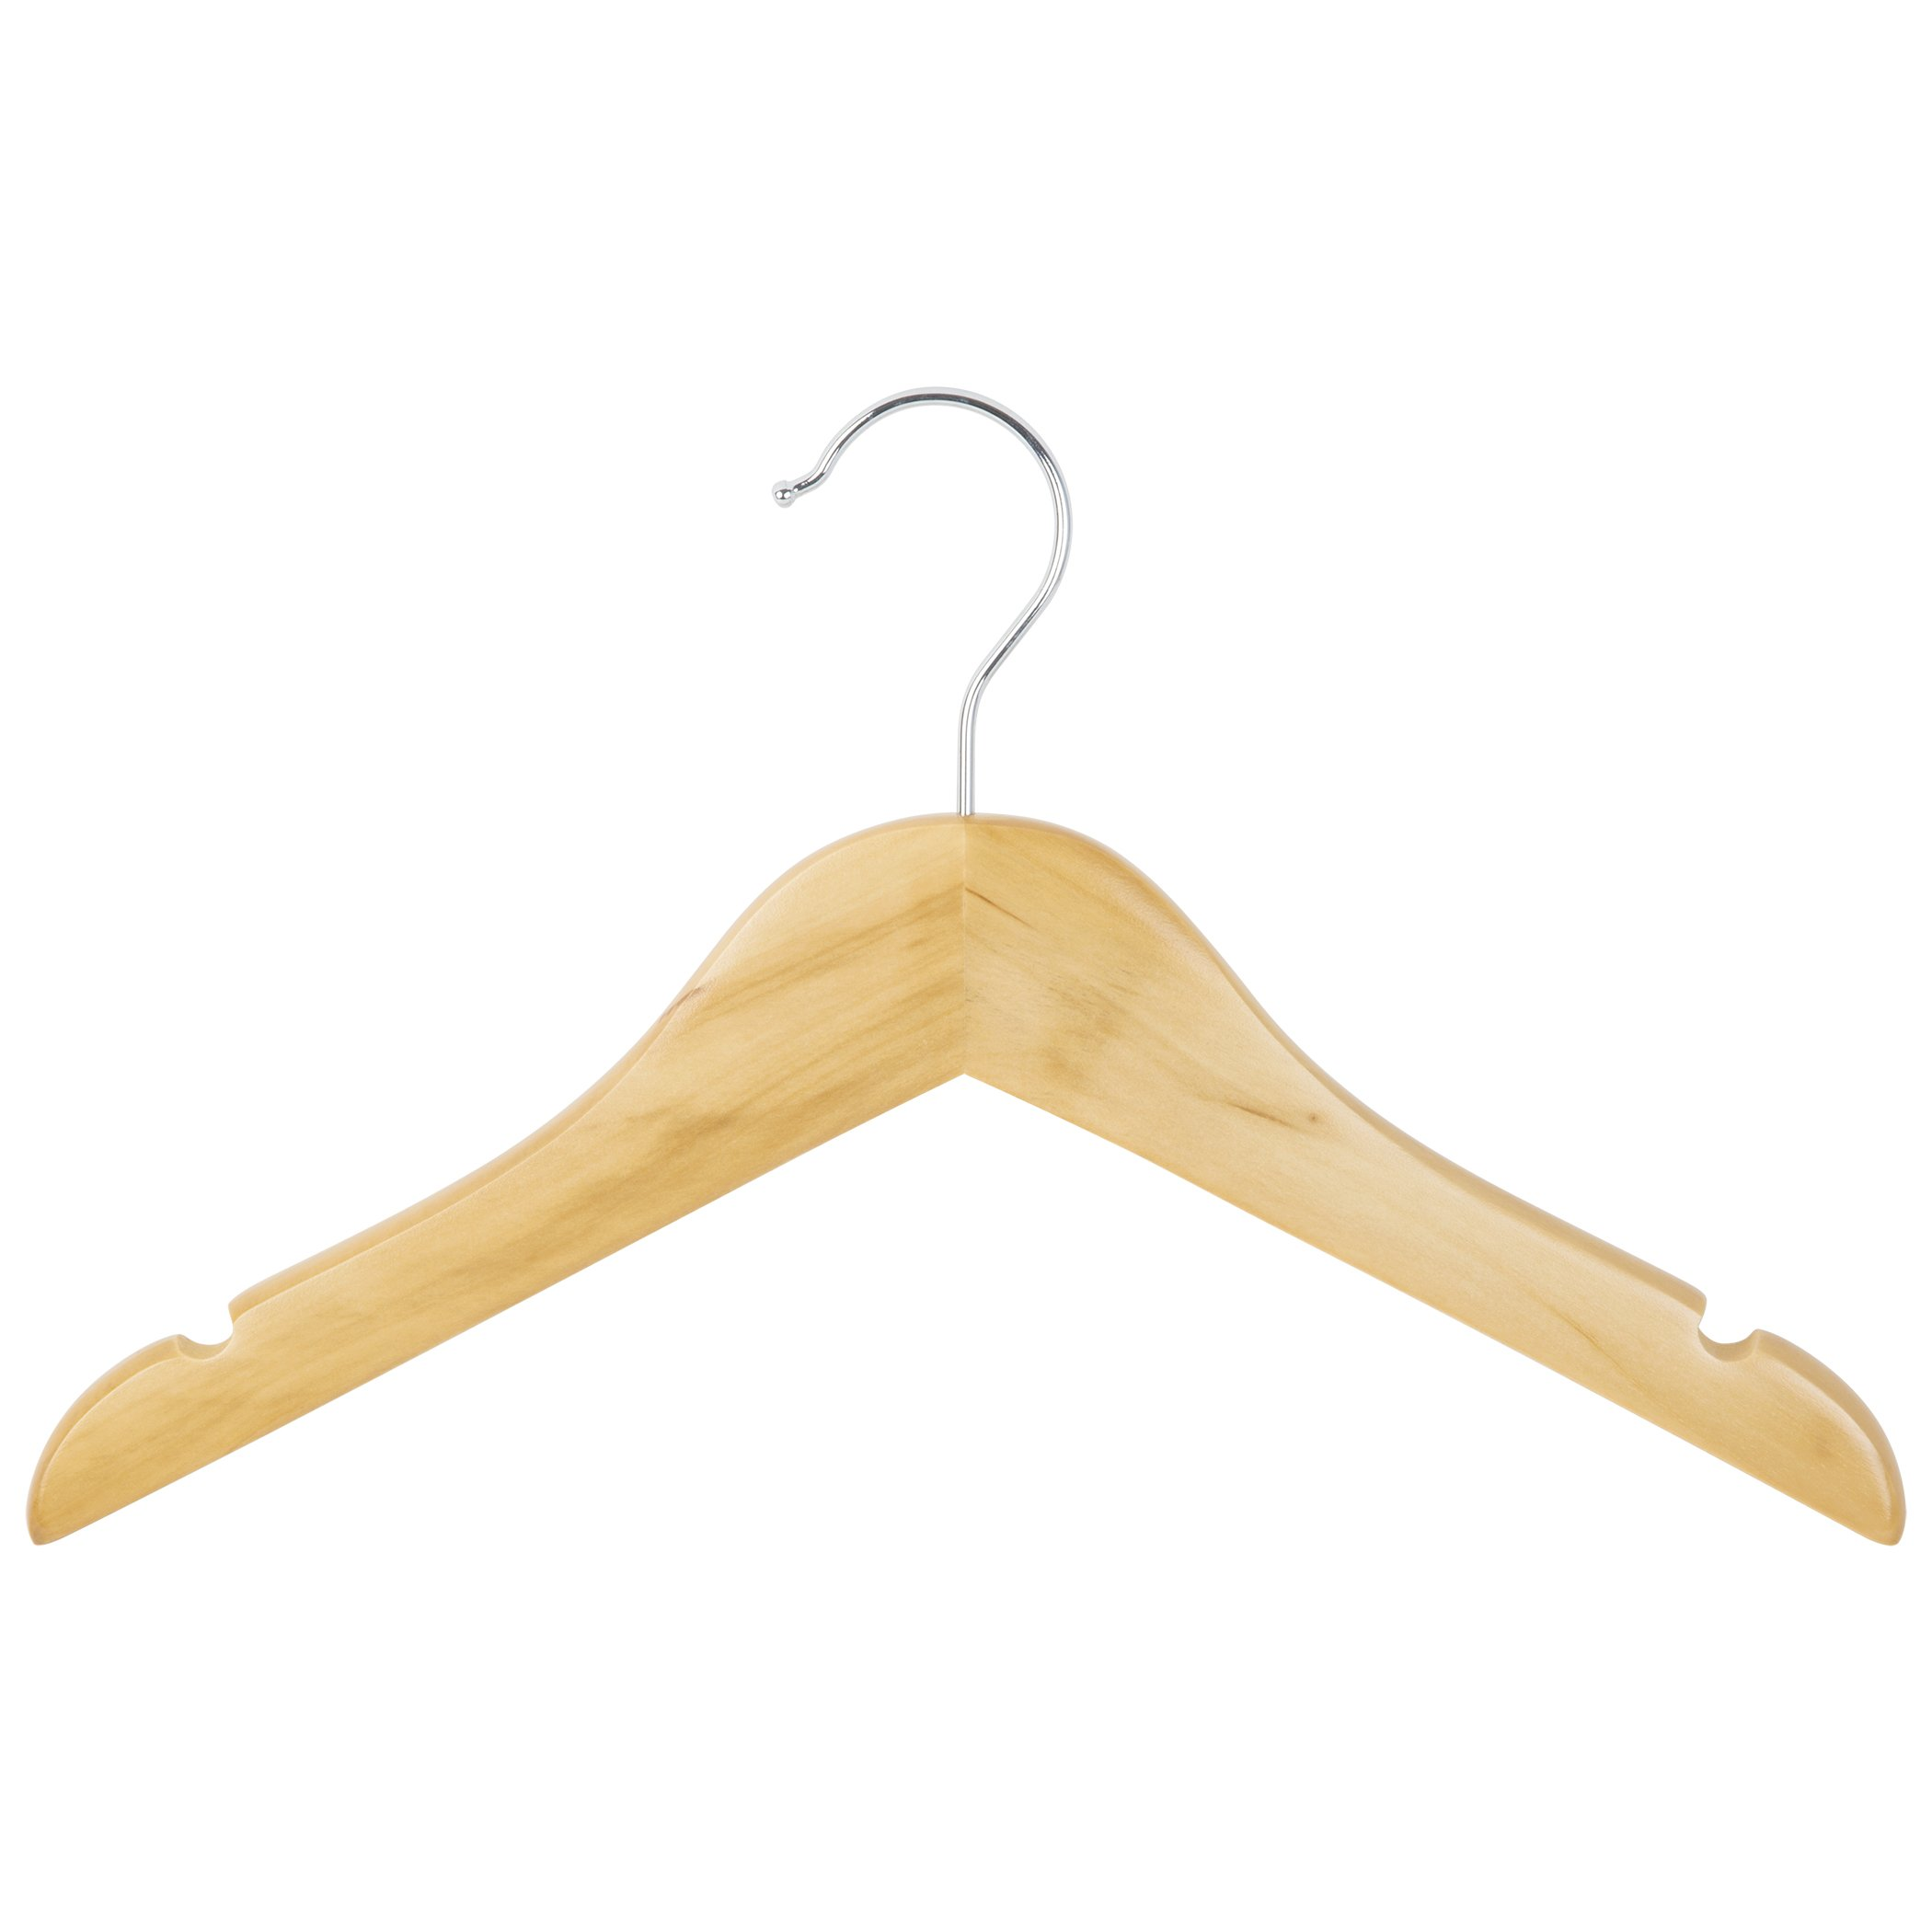 Richards Homewares Imperial/Juvenile Set/6 Wood Children's Shirt/Coat Hangers (Set of 6) by Richards Homewares (Image #1)